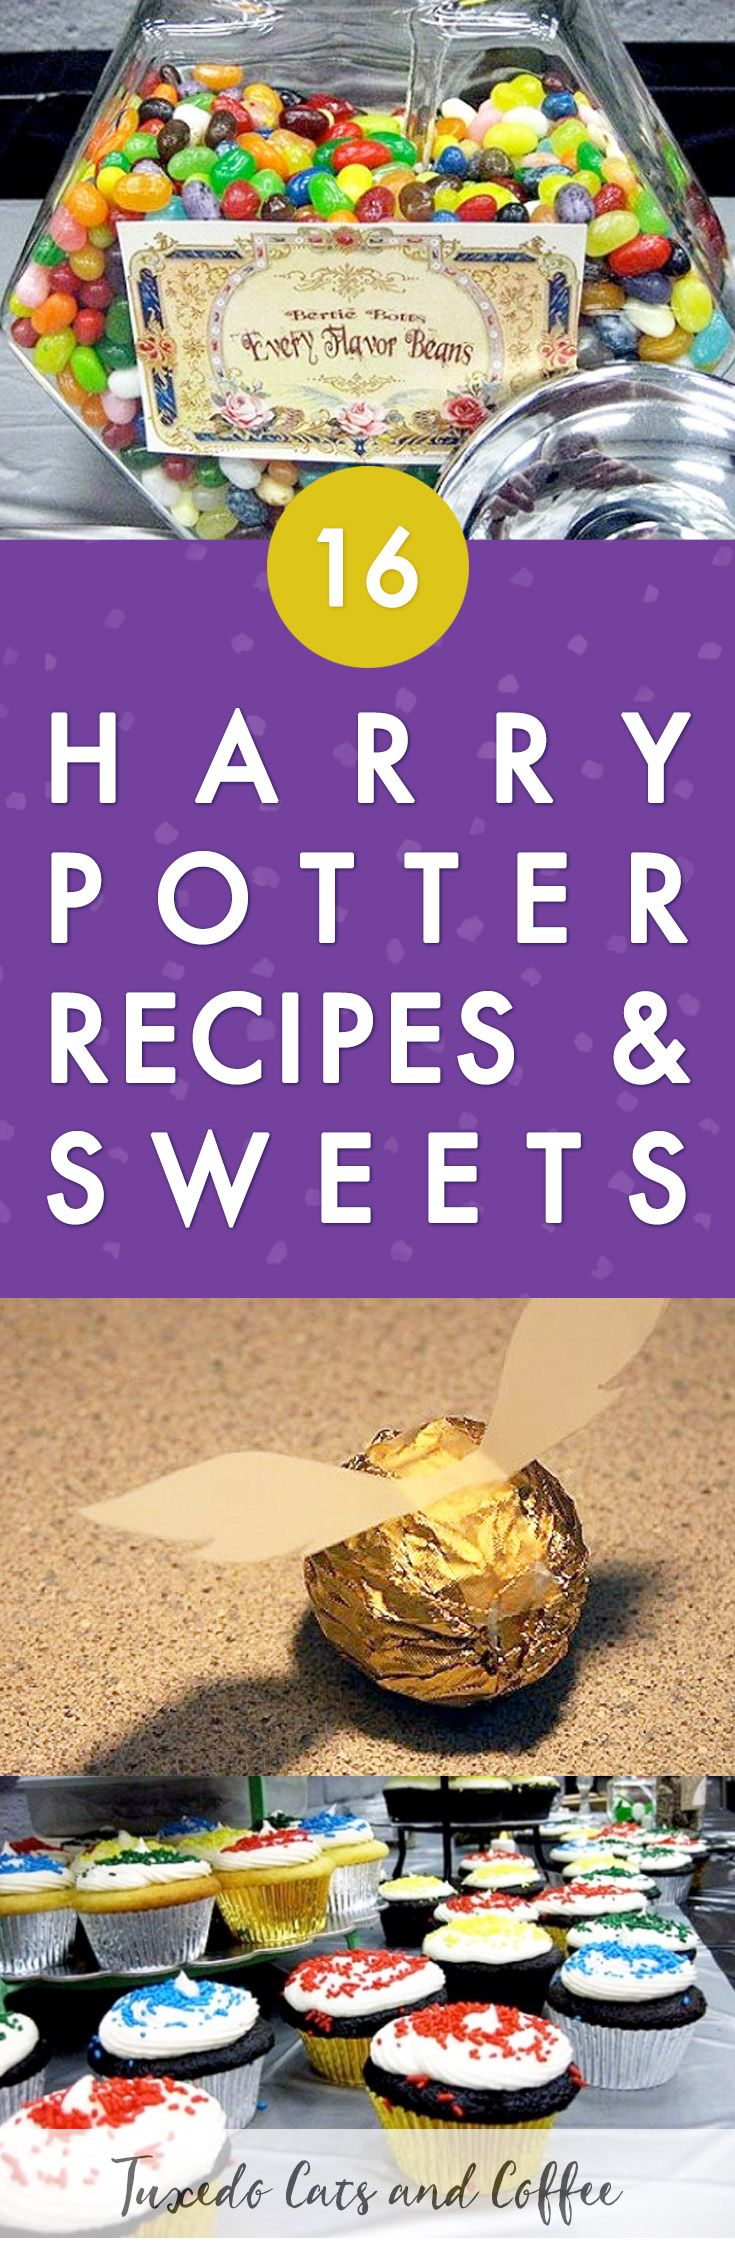 Holding a Harry Potter themed party is a very worthwhile, memorable experience. If you want it to be truly amazing, you're going to put in a lot of time, but from holding my own Harry Potter event I can say it's definitely worth the commitment. Here are a bunch of Harry Potter recipes and sweets ideas. #harrypotter #harrypotterparty #harrypotterideas #harrypotterdesserts #harrypotterrecipes #harrypotterfood